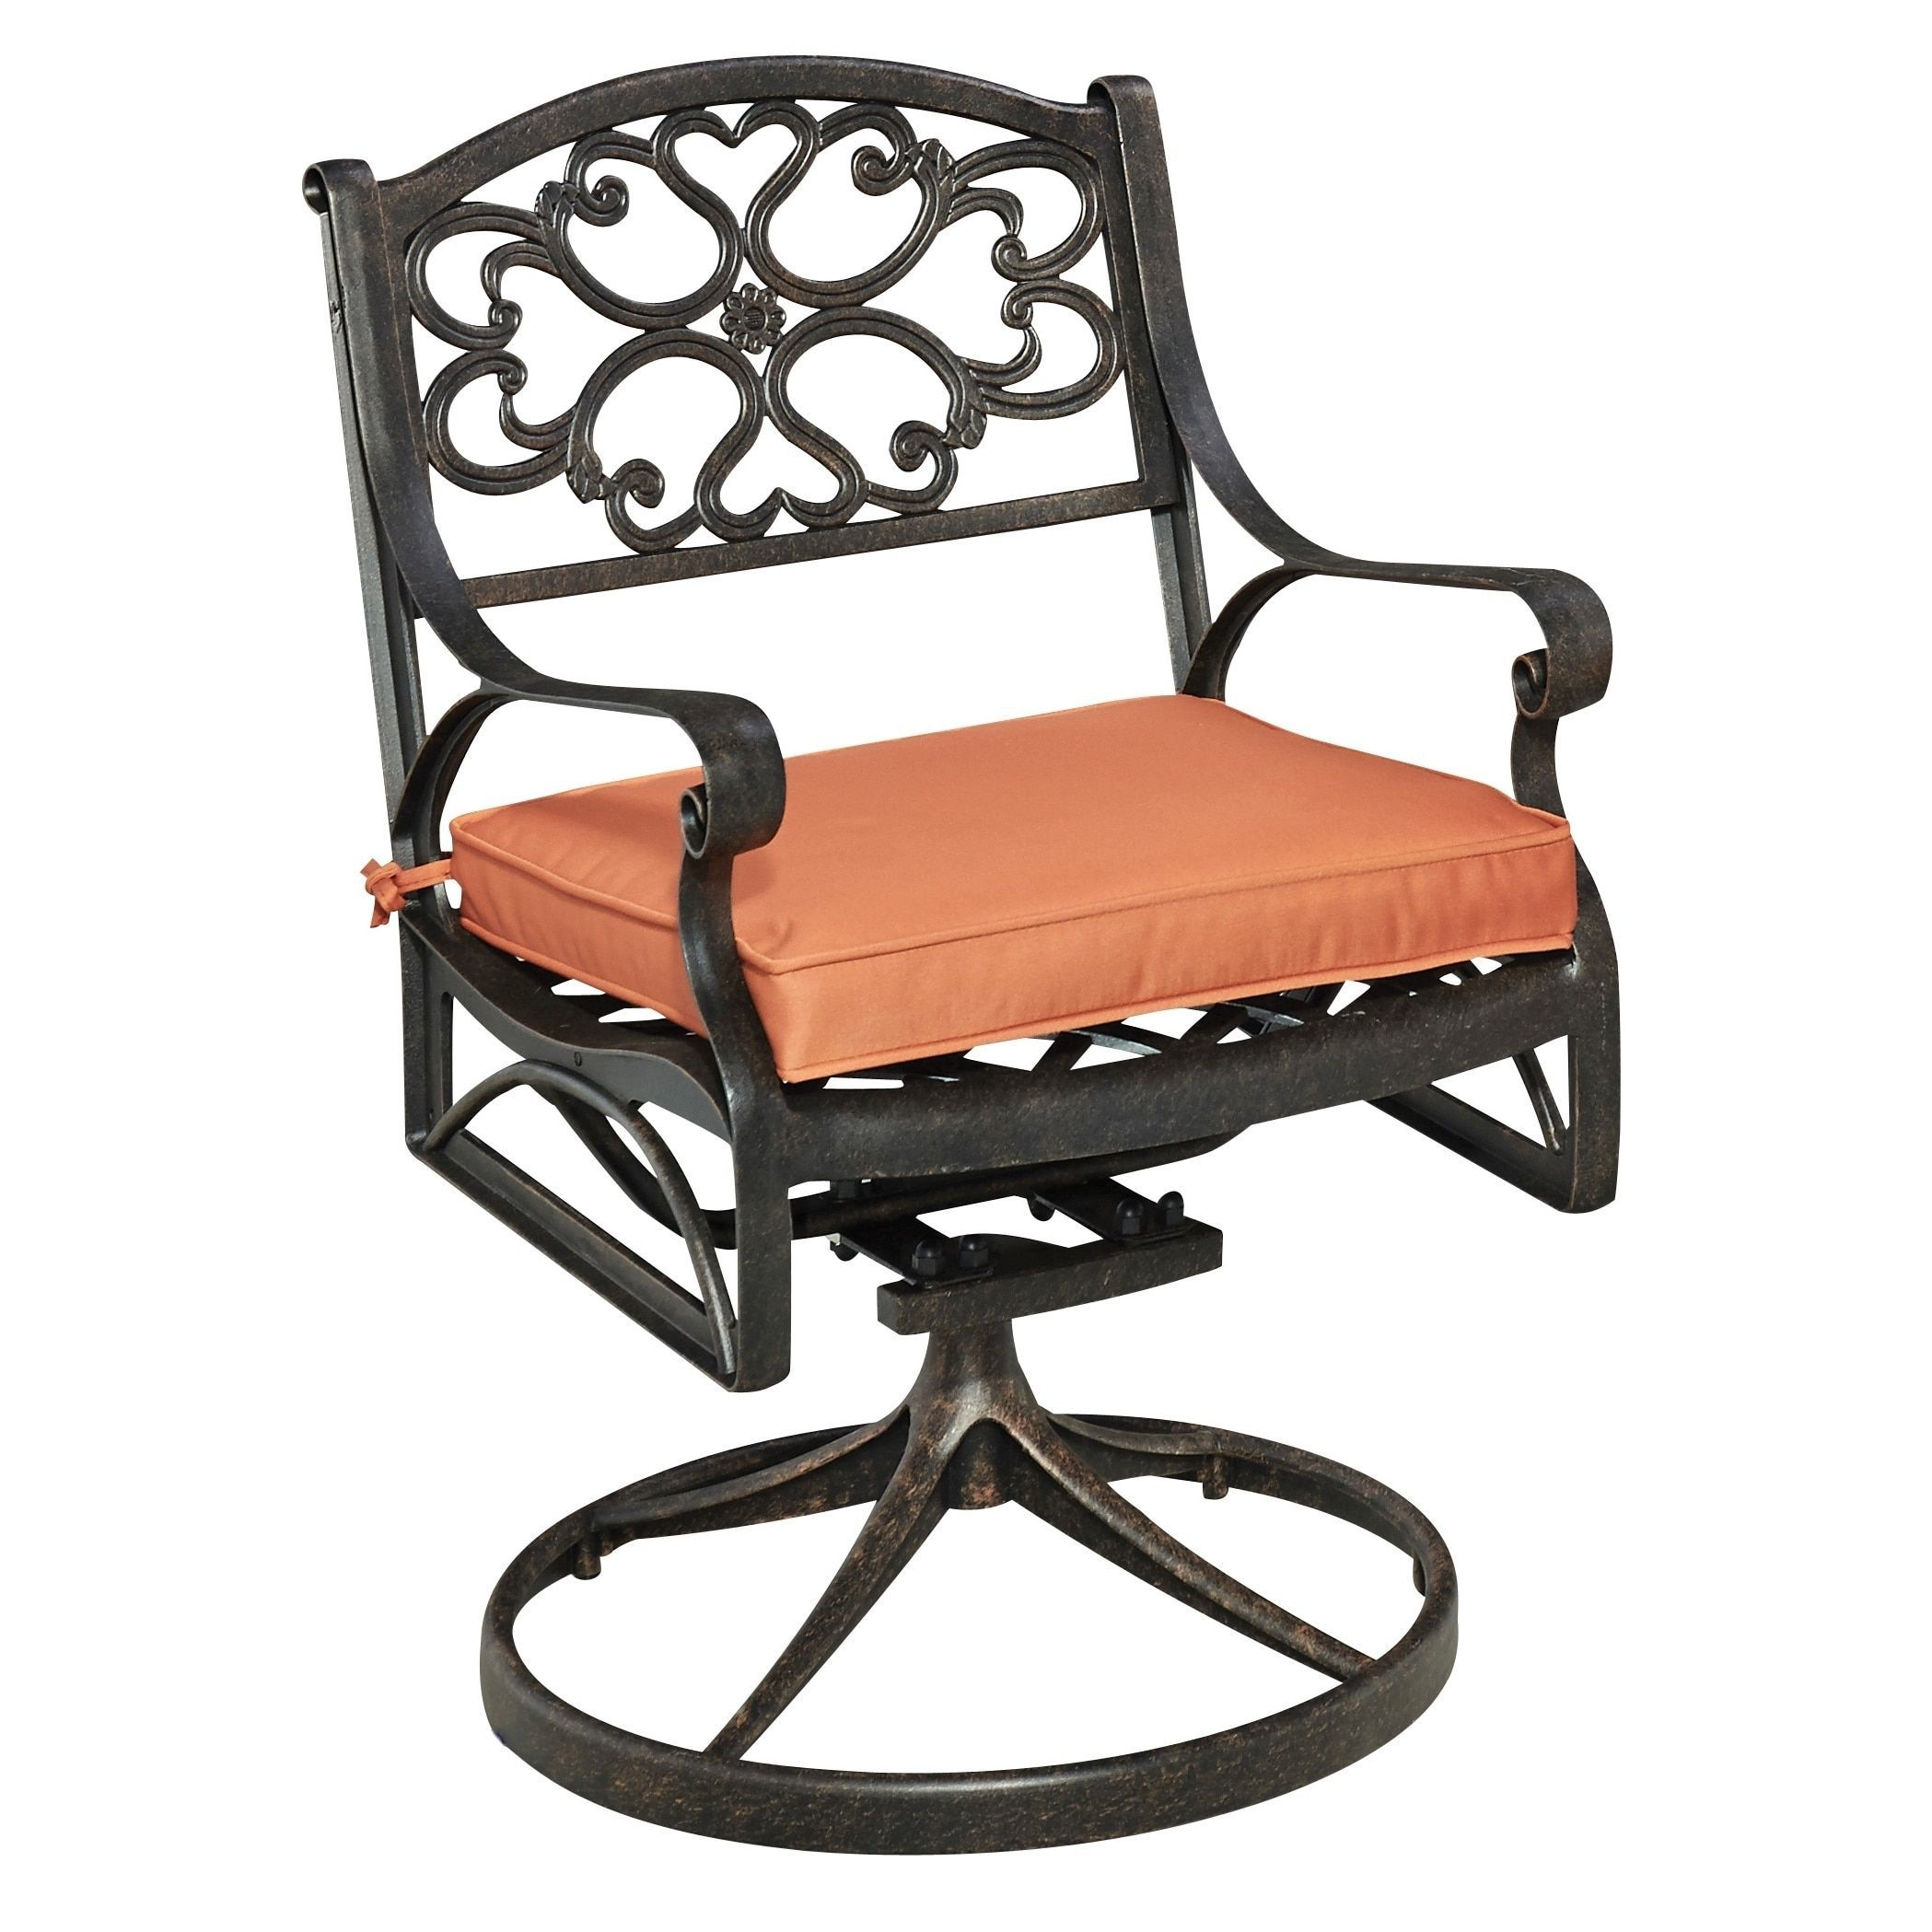 Refresh Your Out Dated Patio Chair With This Home Styles Biscayne Rust Bronze Swivel Cast Aluminum Outdoor Dining C Cushion